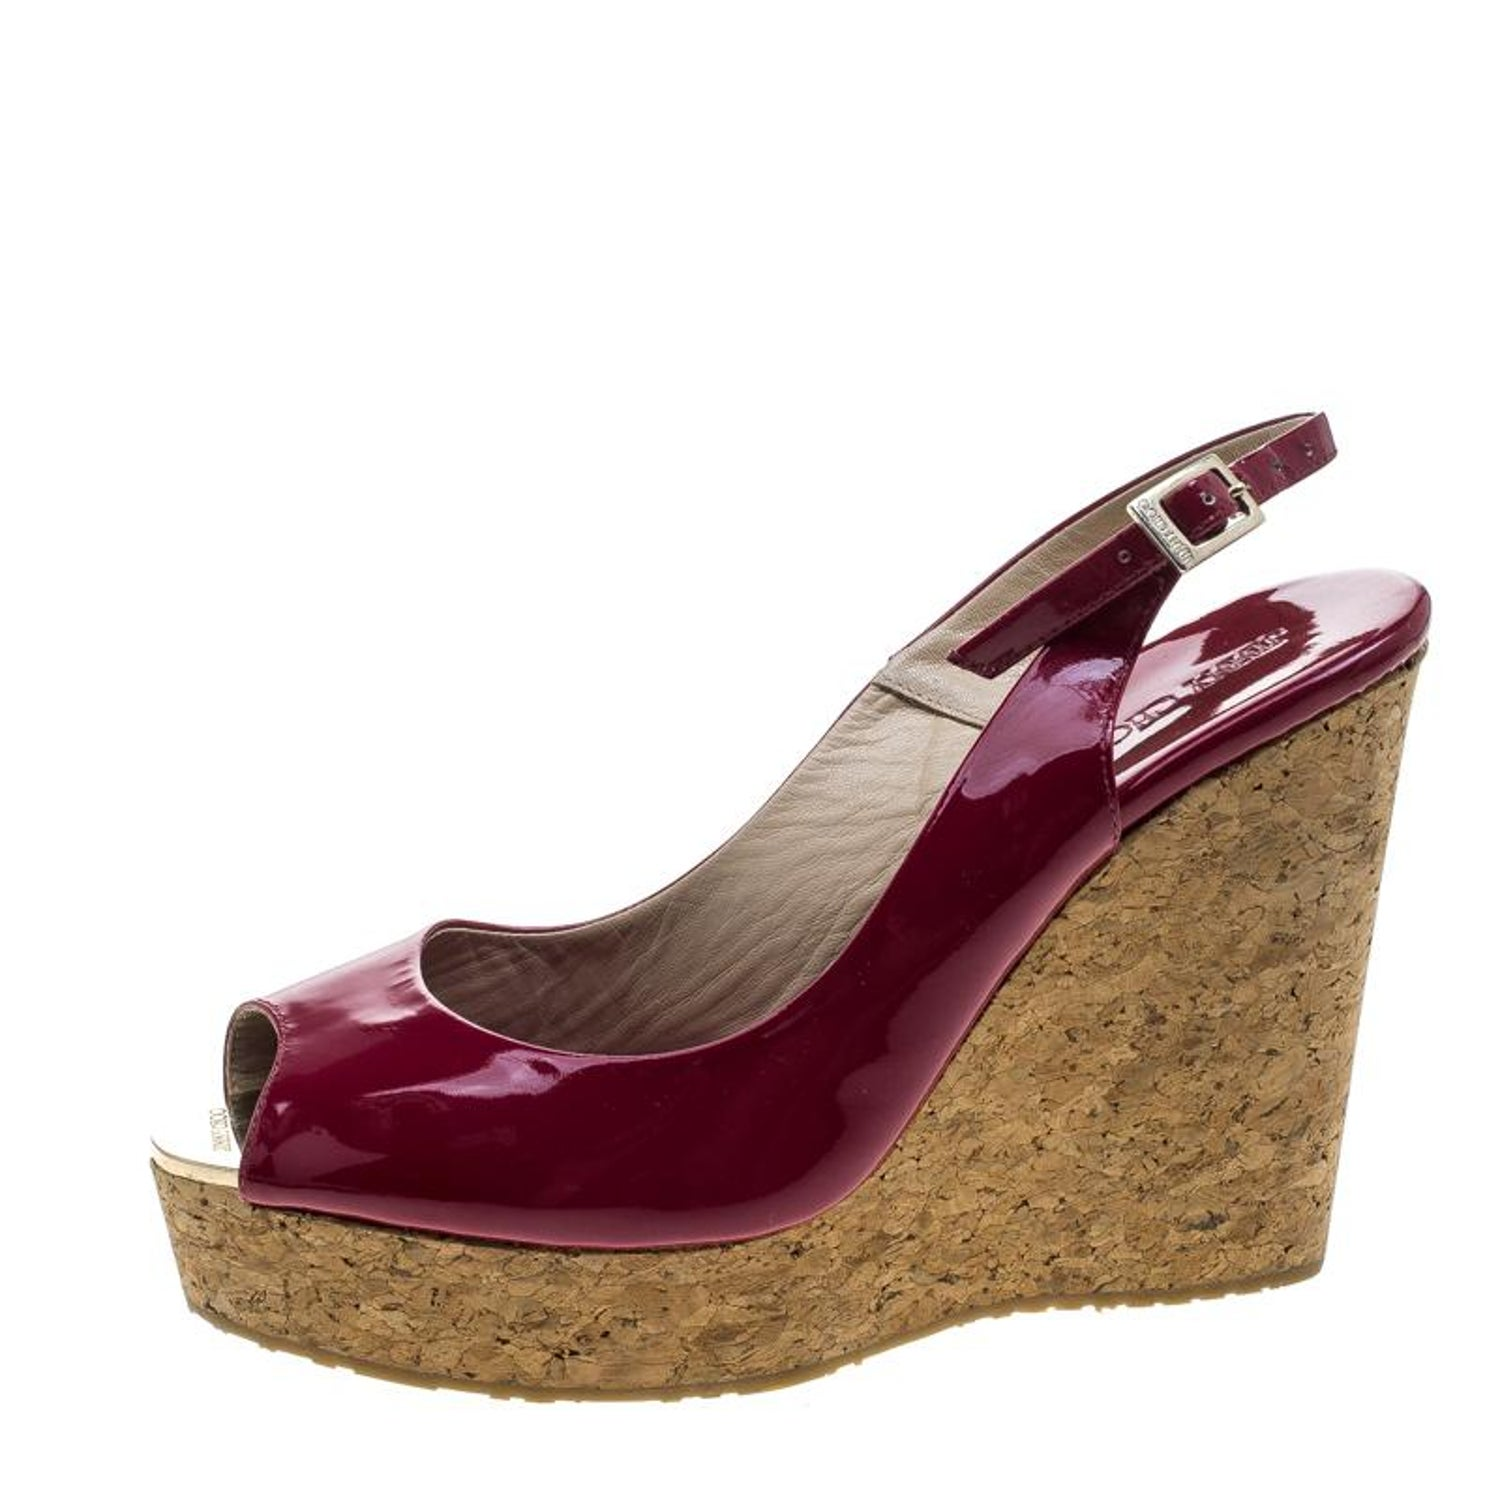 eda0addd21a Jimmy Choo Cherry Red Patent Leather Prova Cork Wedge Slingback Sandals  Size 40 For Sale at 1stdibs